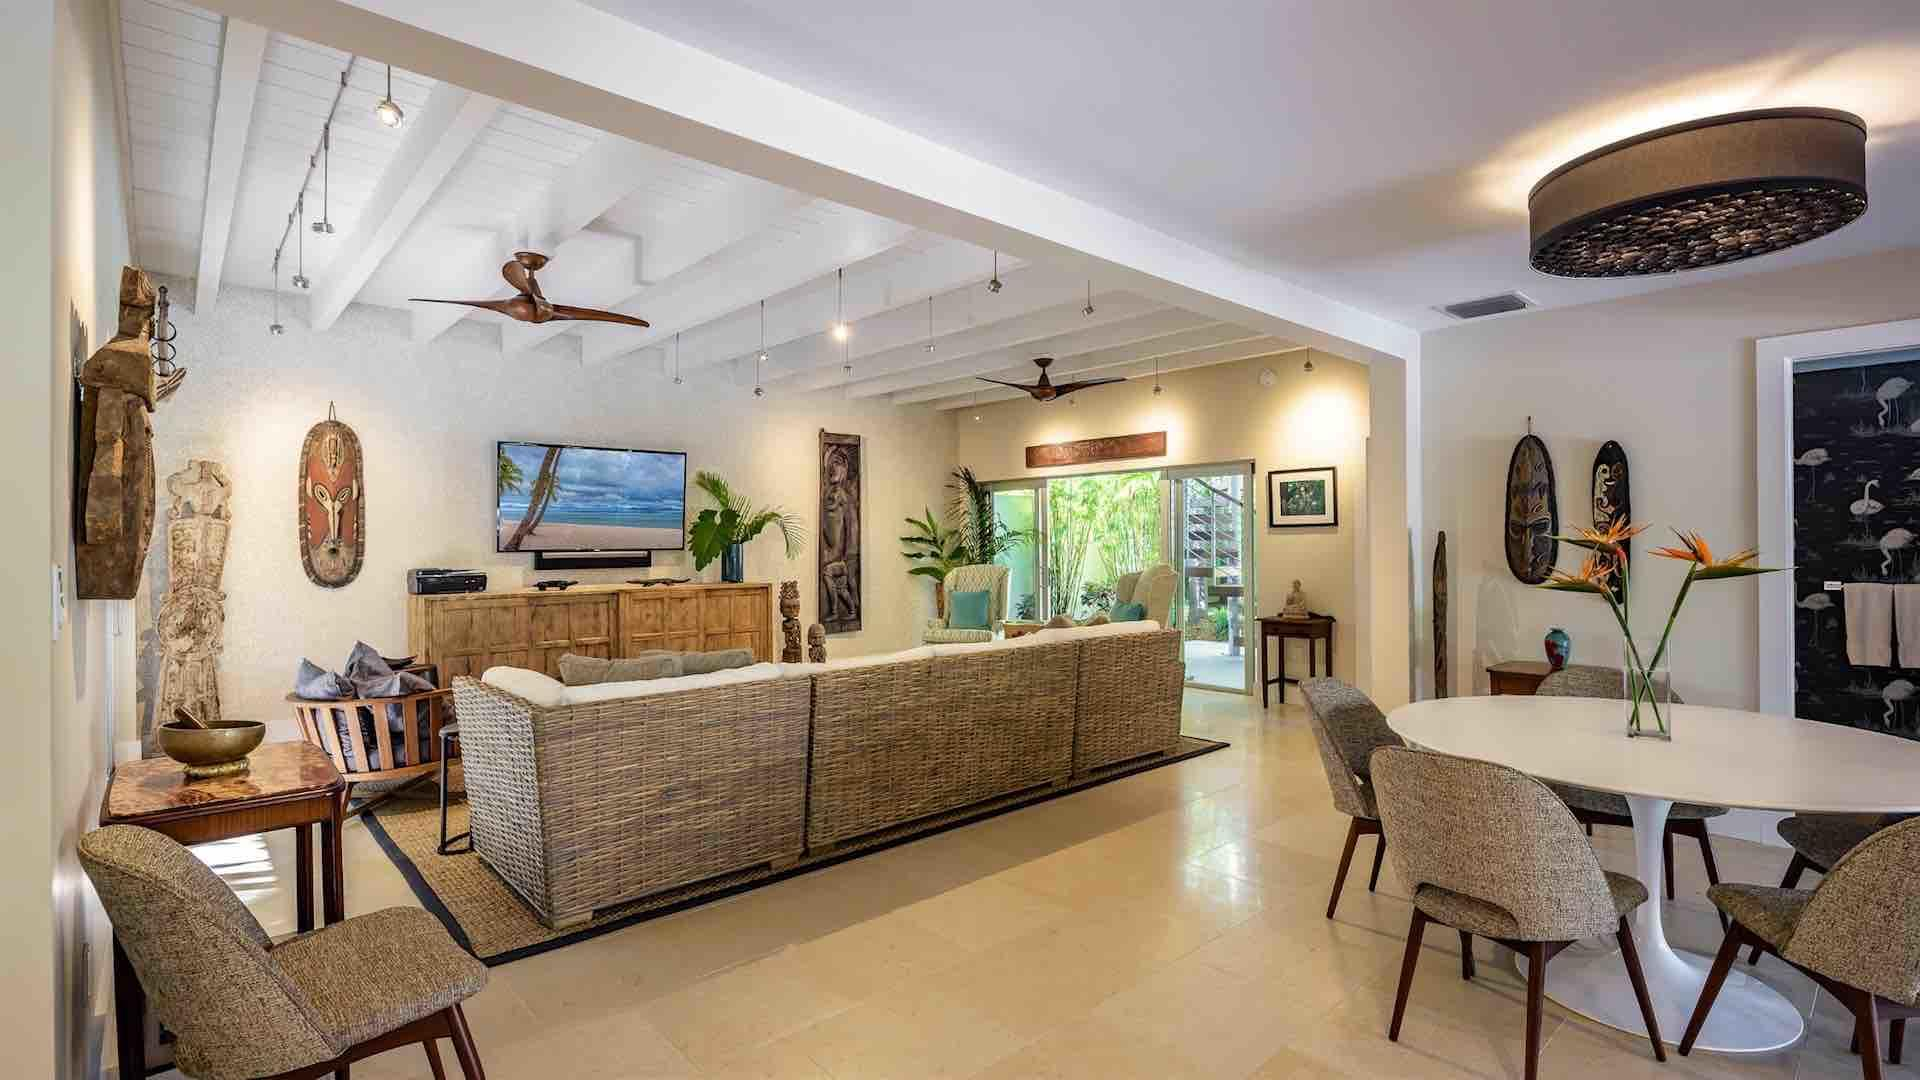 Let the island breeze flow through the home, by throwing open the large sliding glass doors...